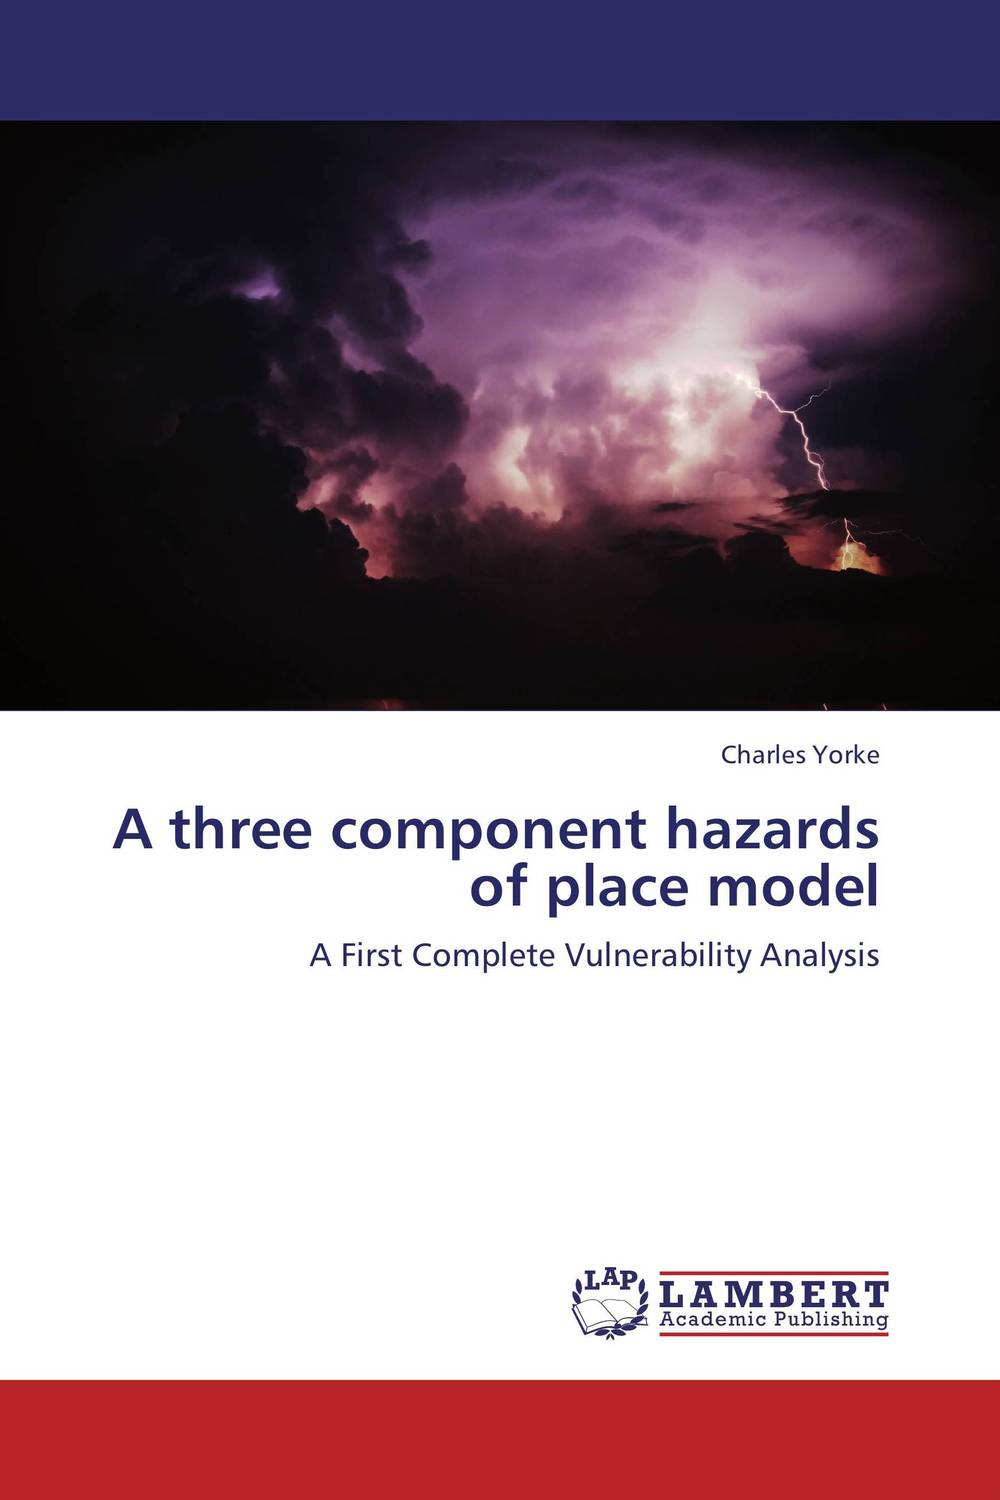 A three component hazards of place model addison wiggin endless money the moral hazards of socialism